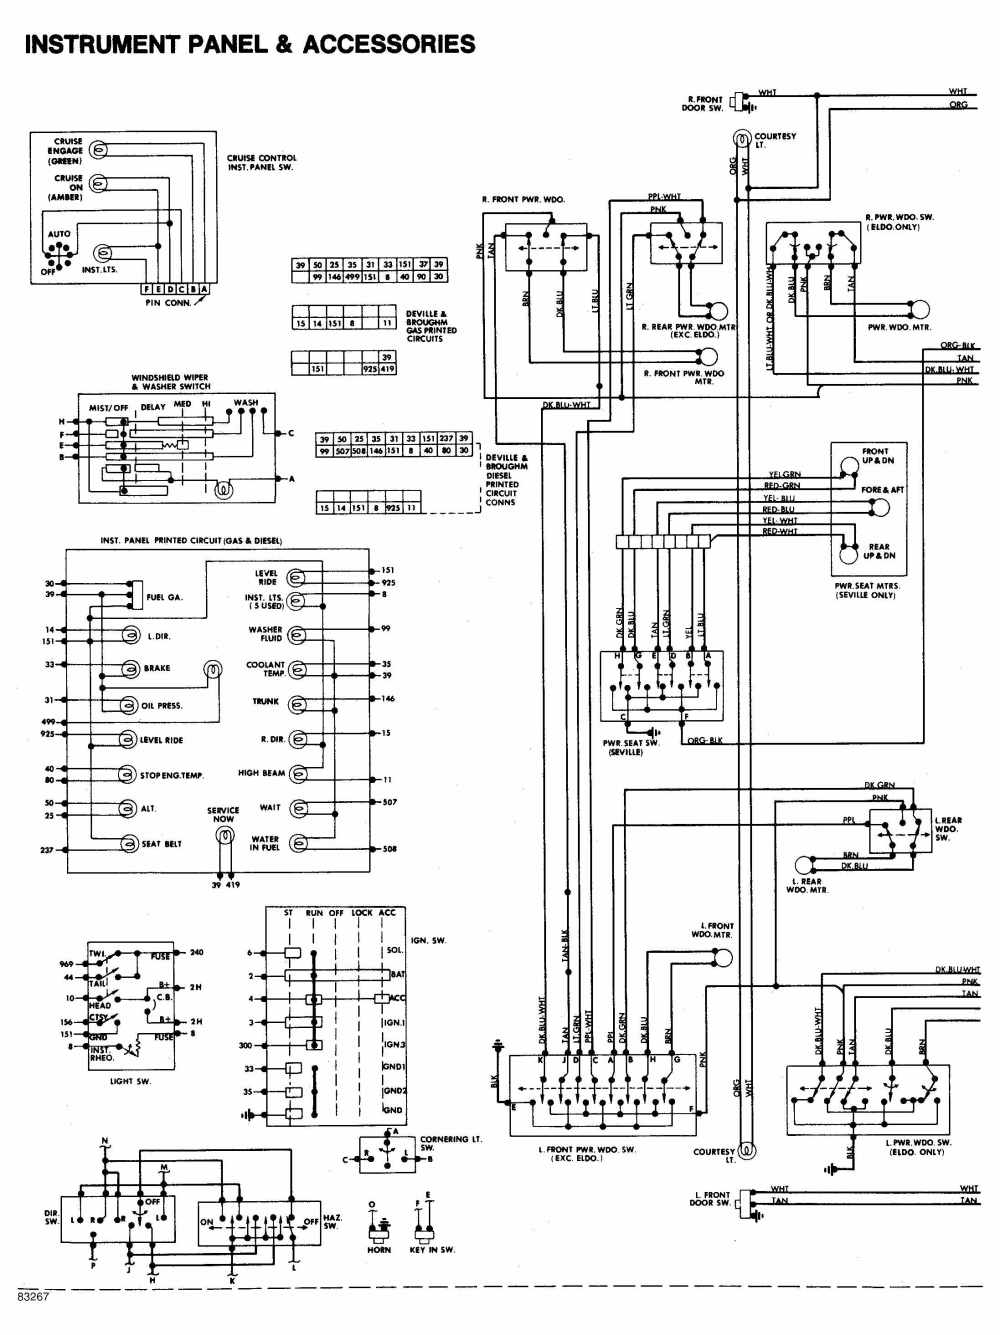 medium resolution of rear window 2000 vw jetta wiring diagram wiring diagrams scematic vw type 2 wiring diagram 1987 vw jetta wiring diagram